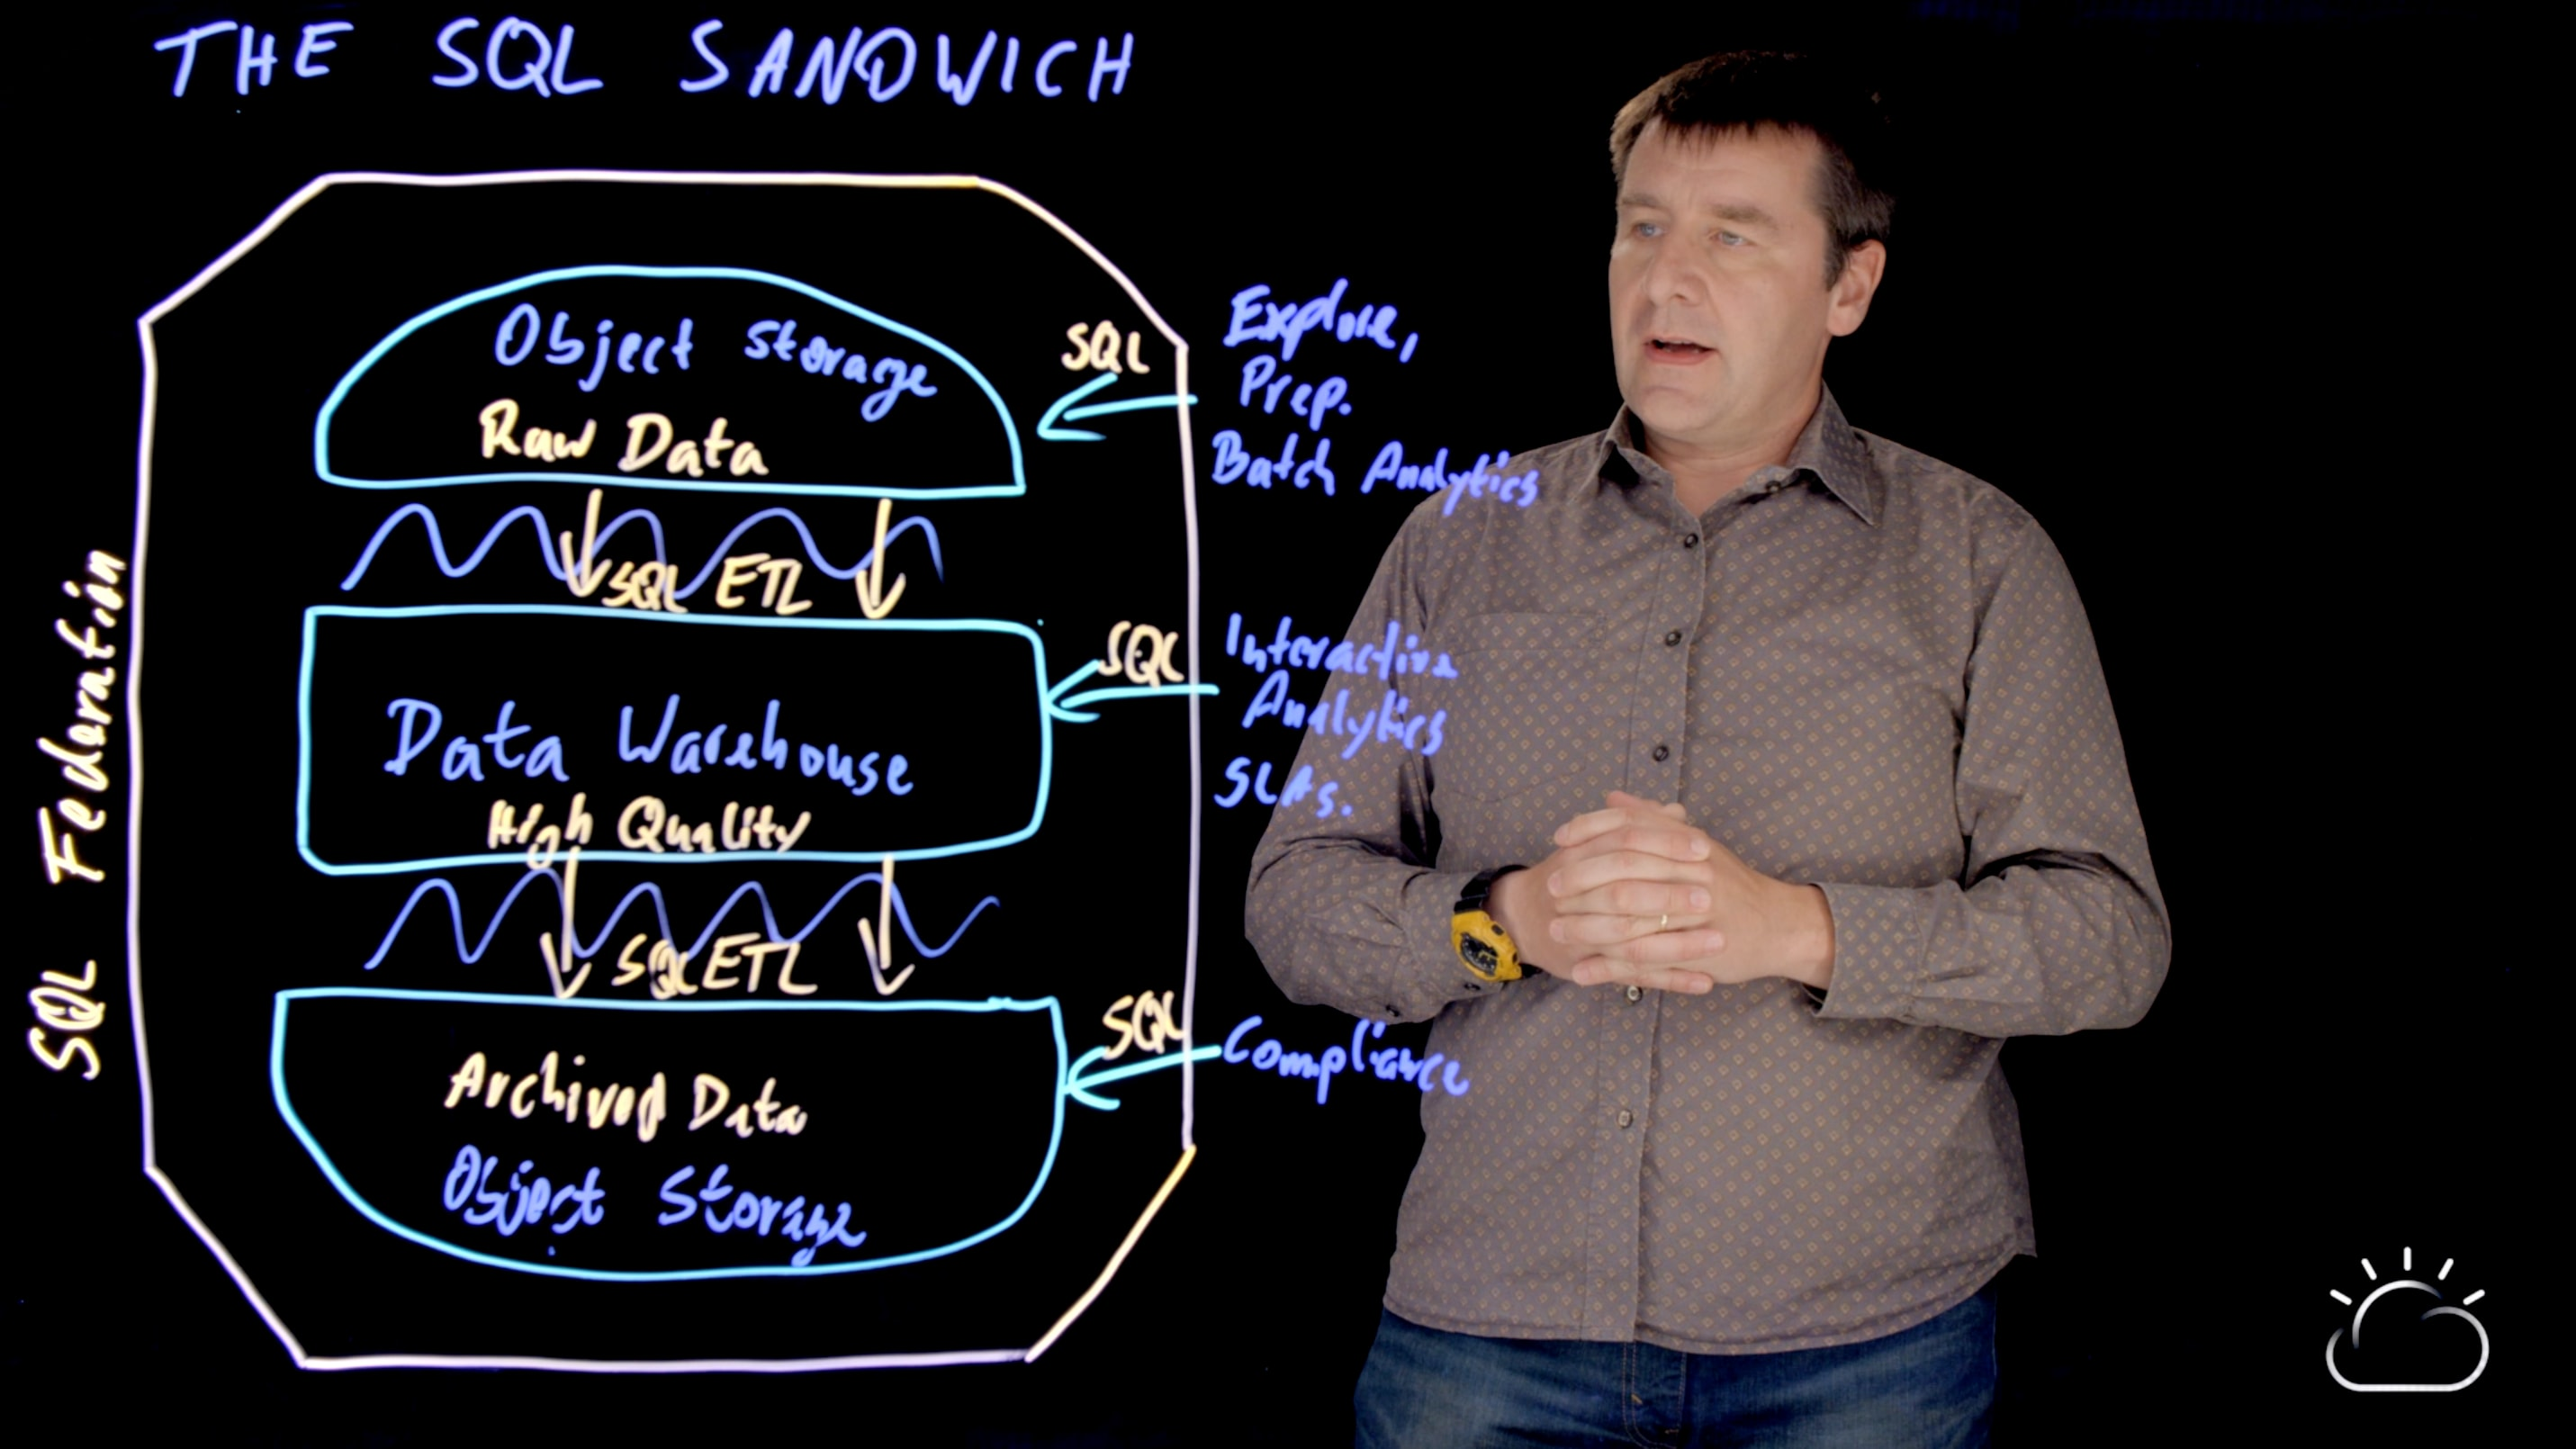 Why is it called a SQL Sandwich?